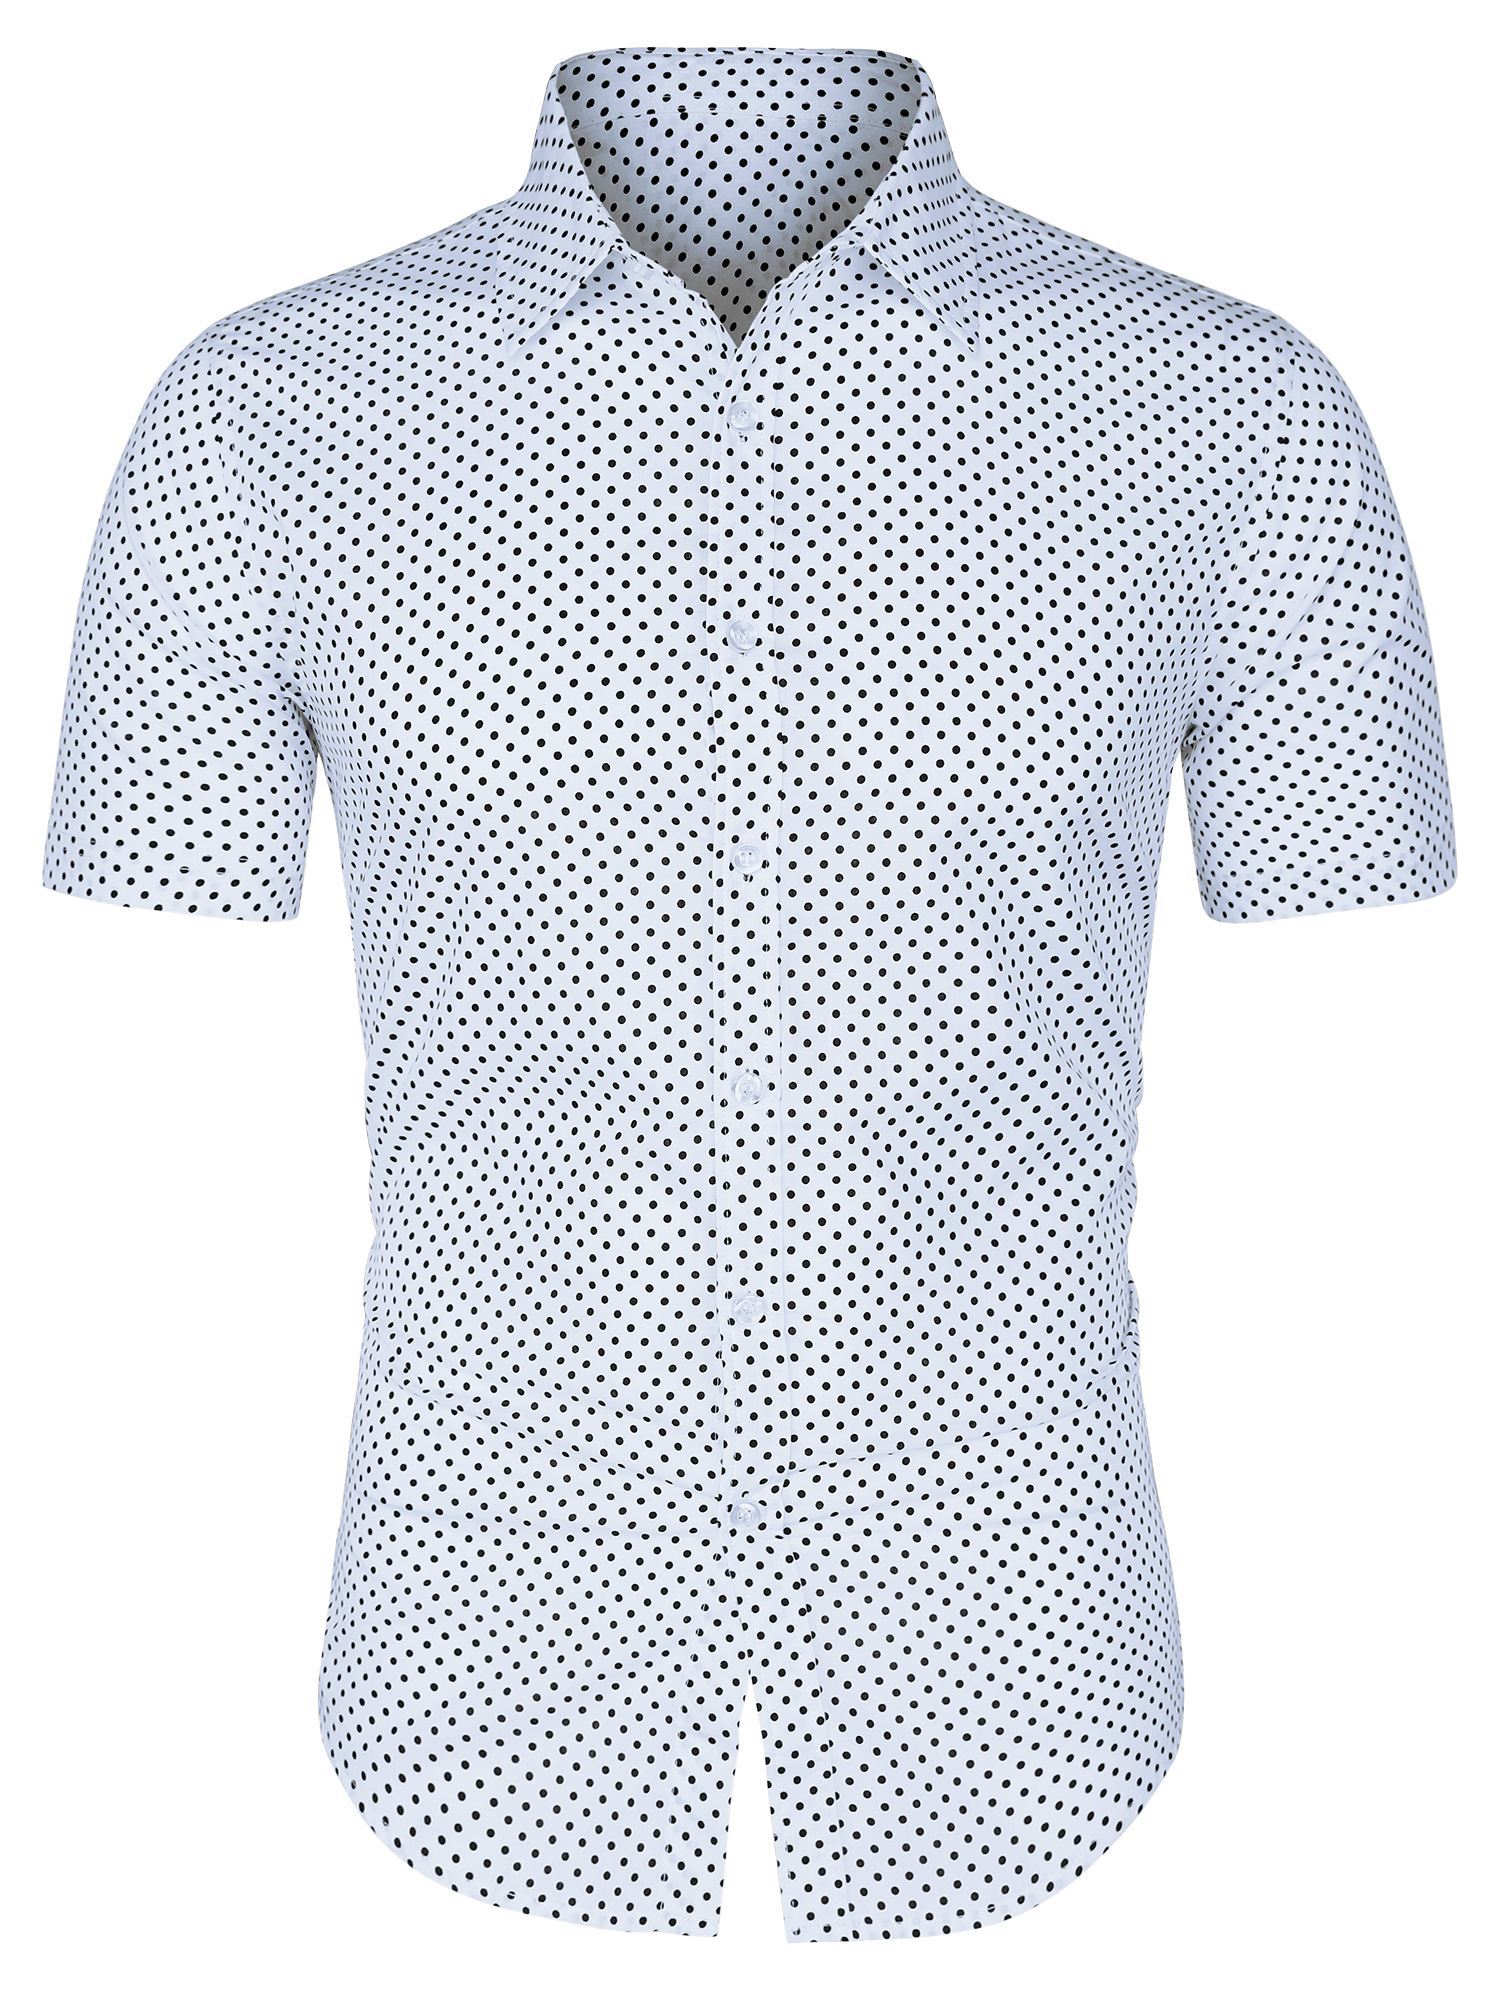 Mens Short Sleeves Button Up Cotton Polka Dots Shirt White S